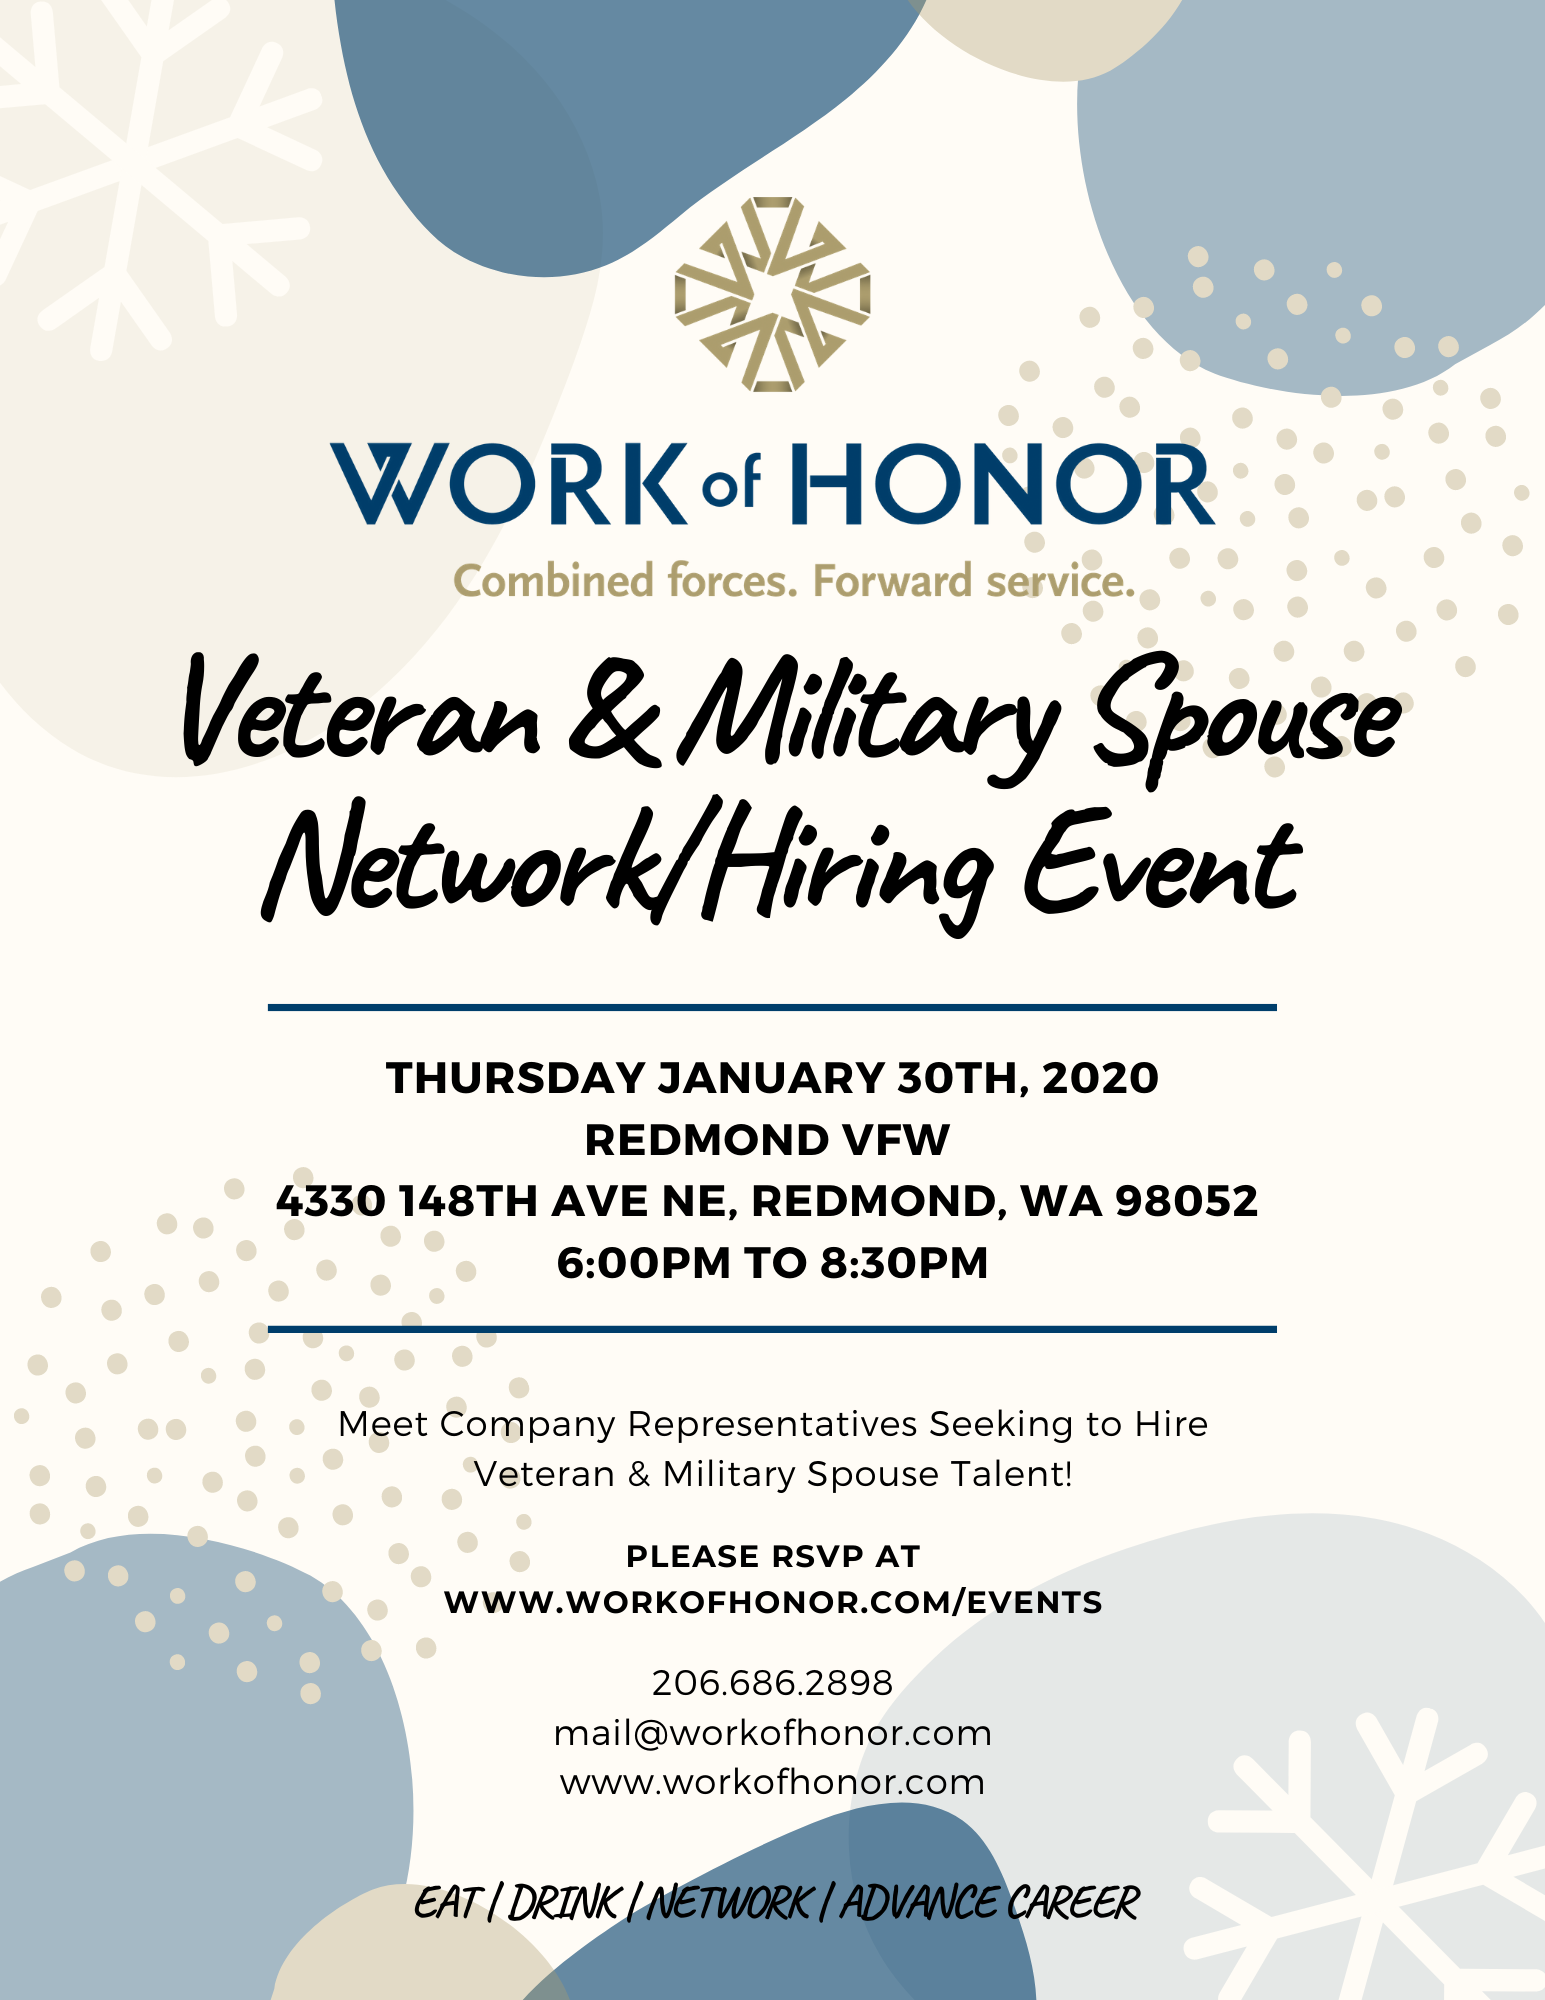 Business Network / Hiring Event for Veterans, Military Spouses & Business Professionals!